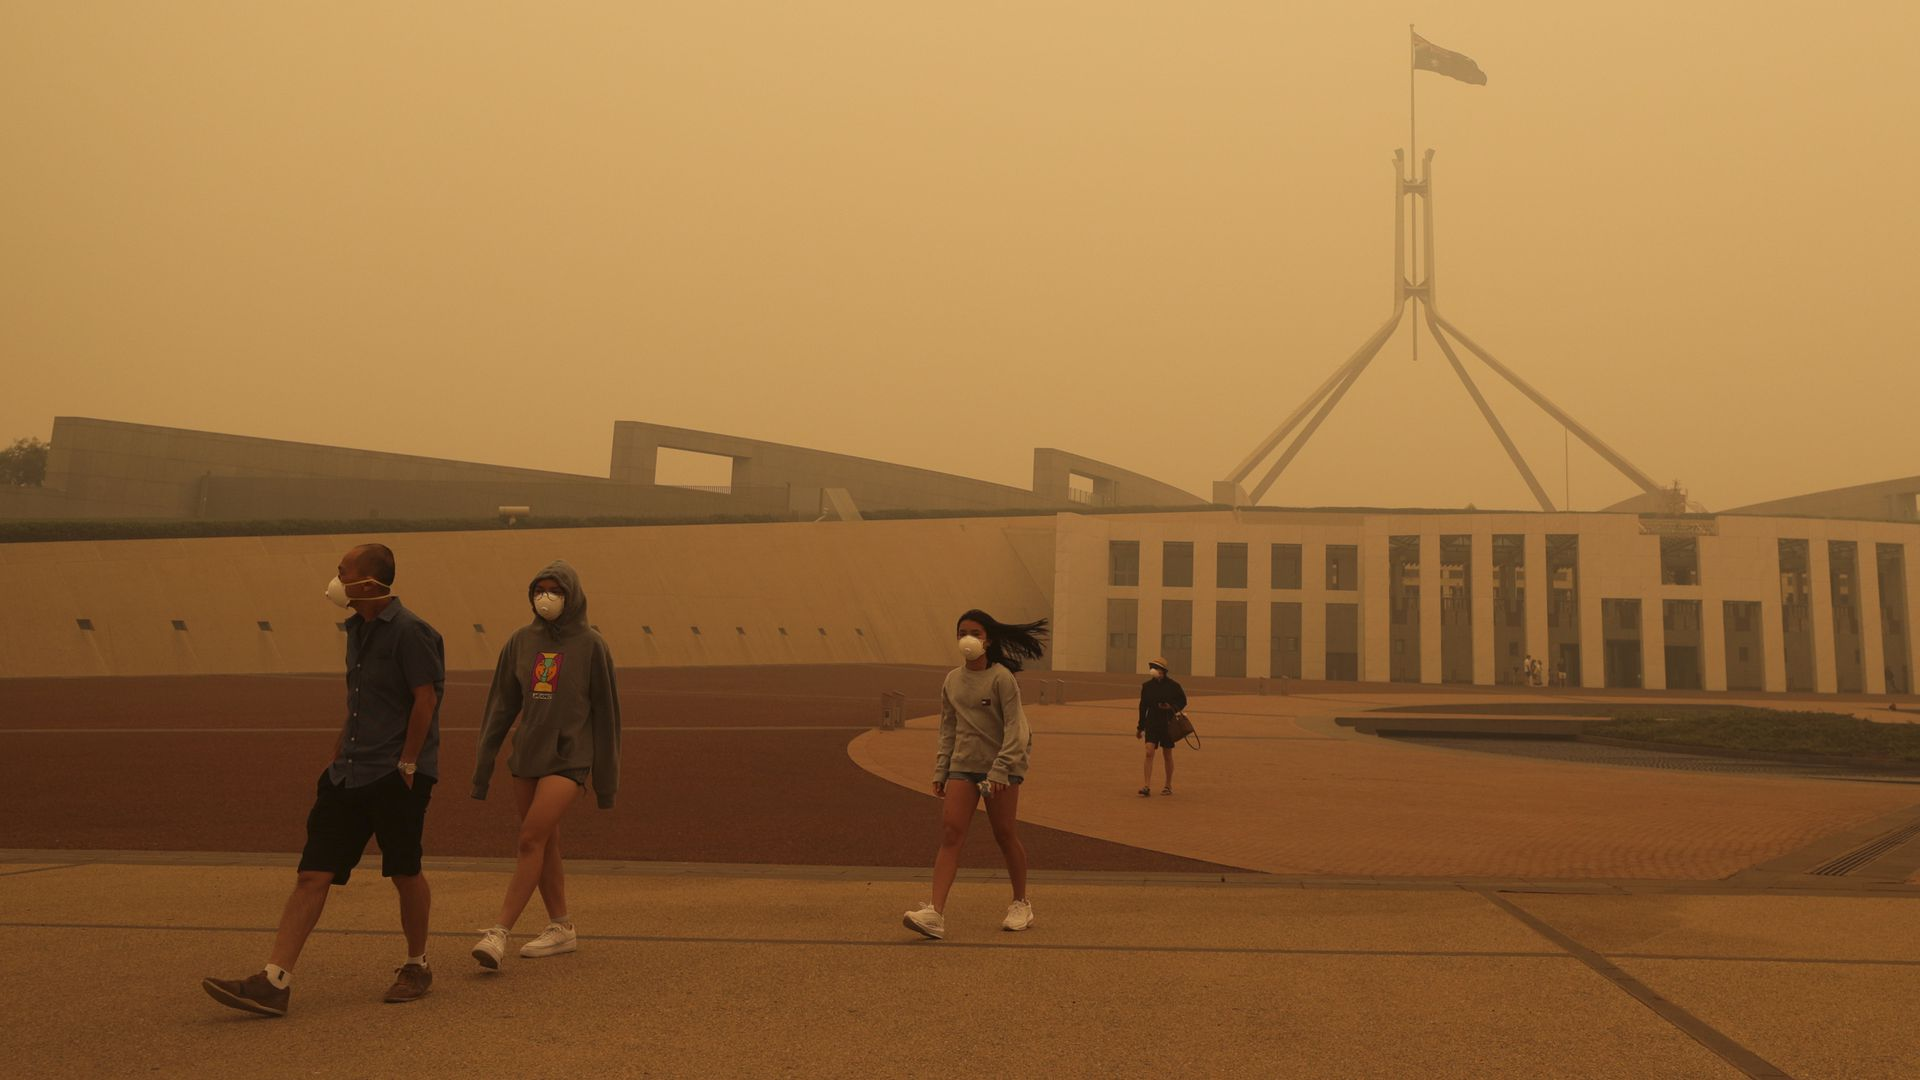 Visitors to Parliament House are forced to wear face masks after smoke from bushfires blankets Canberra in a haze with hazardous air quality on January 5, 2020 in Canberra, Australia